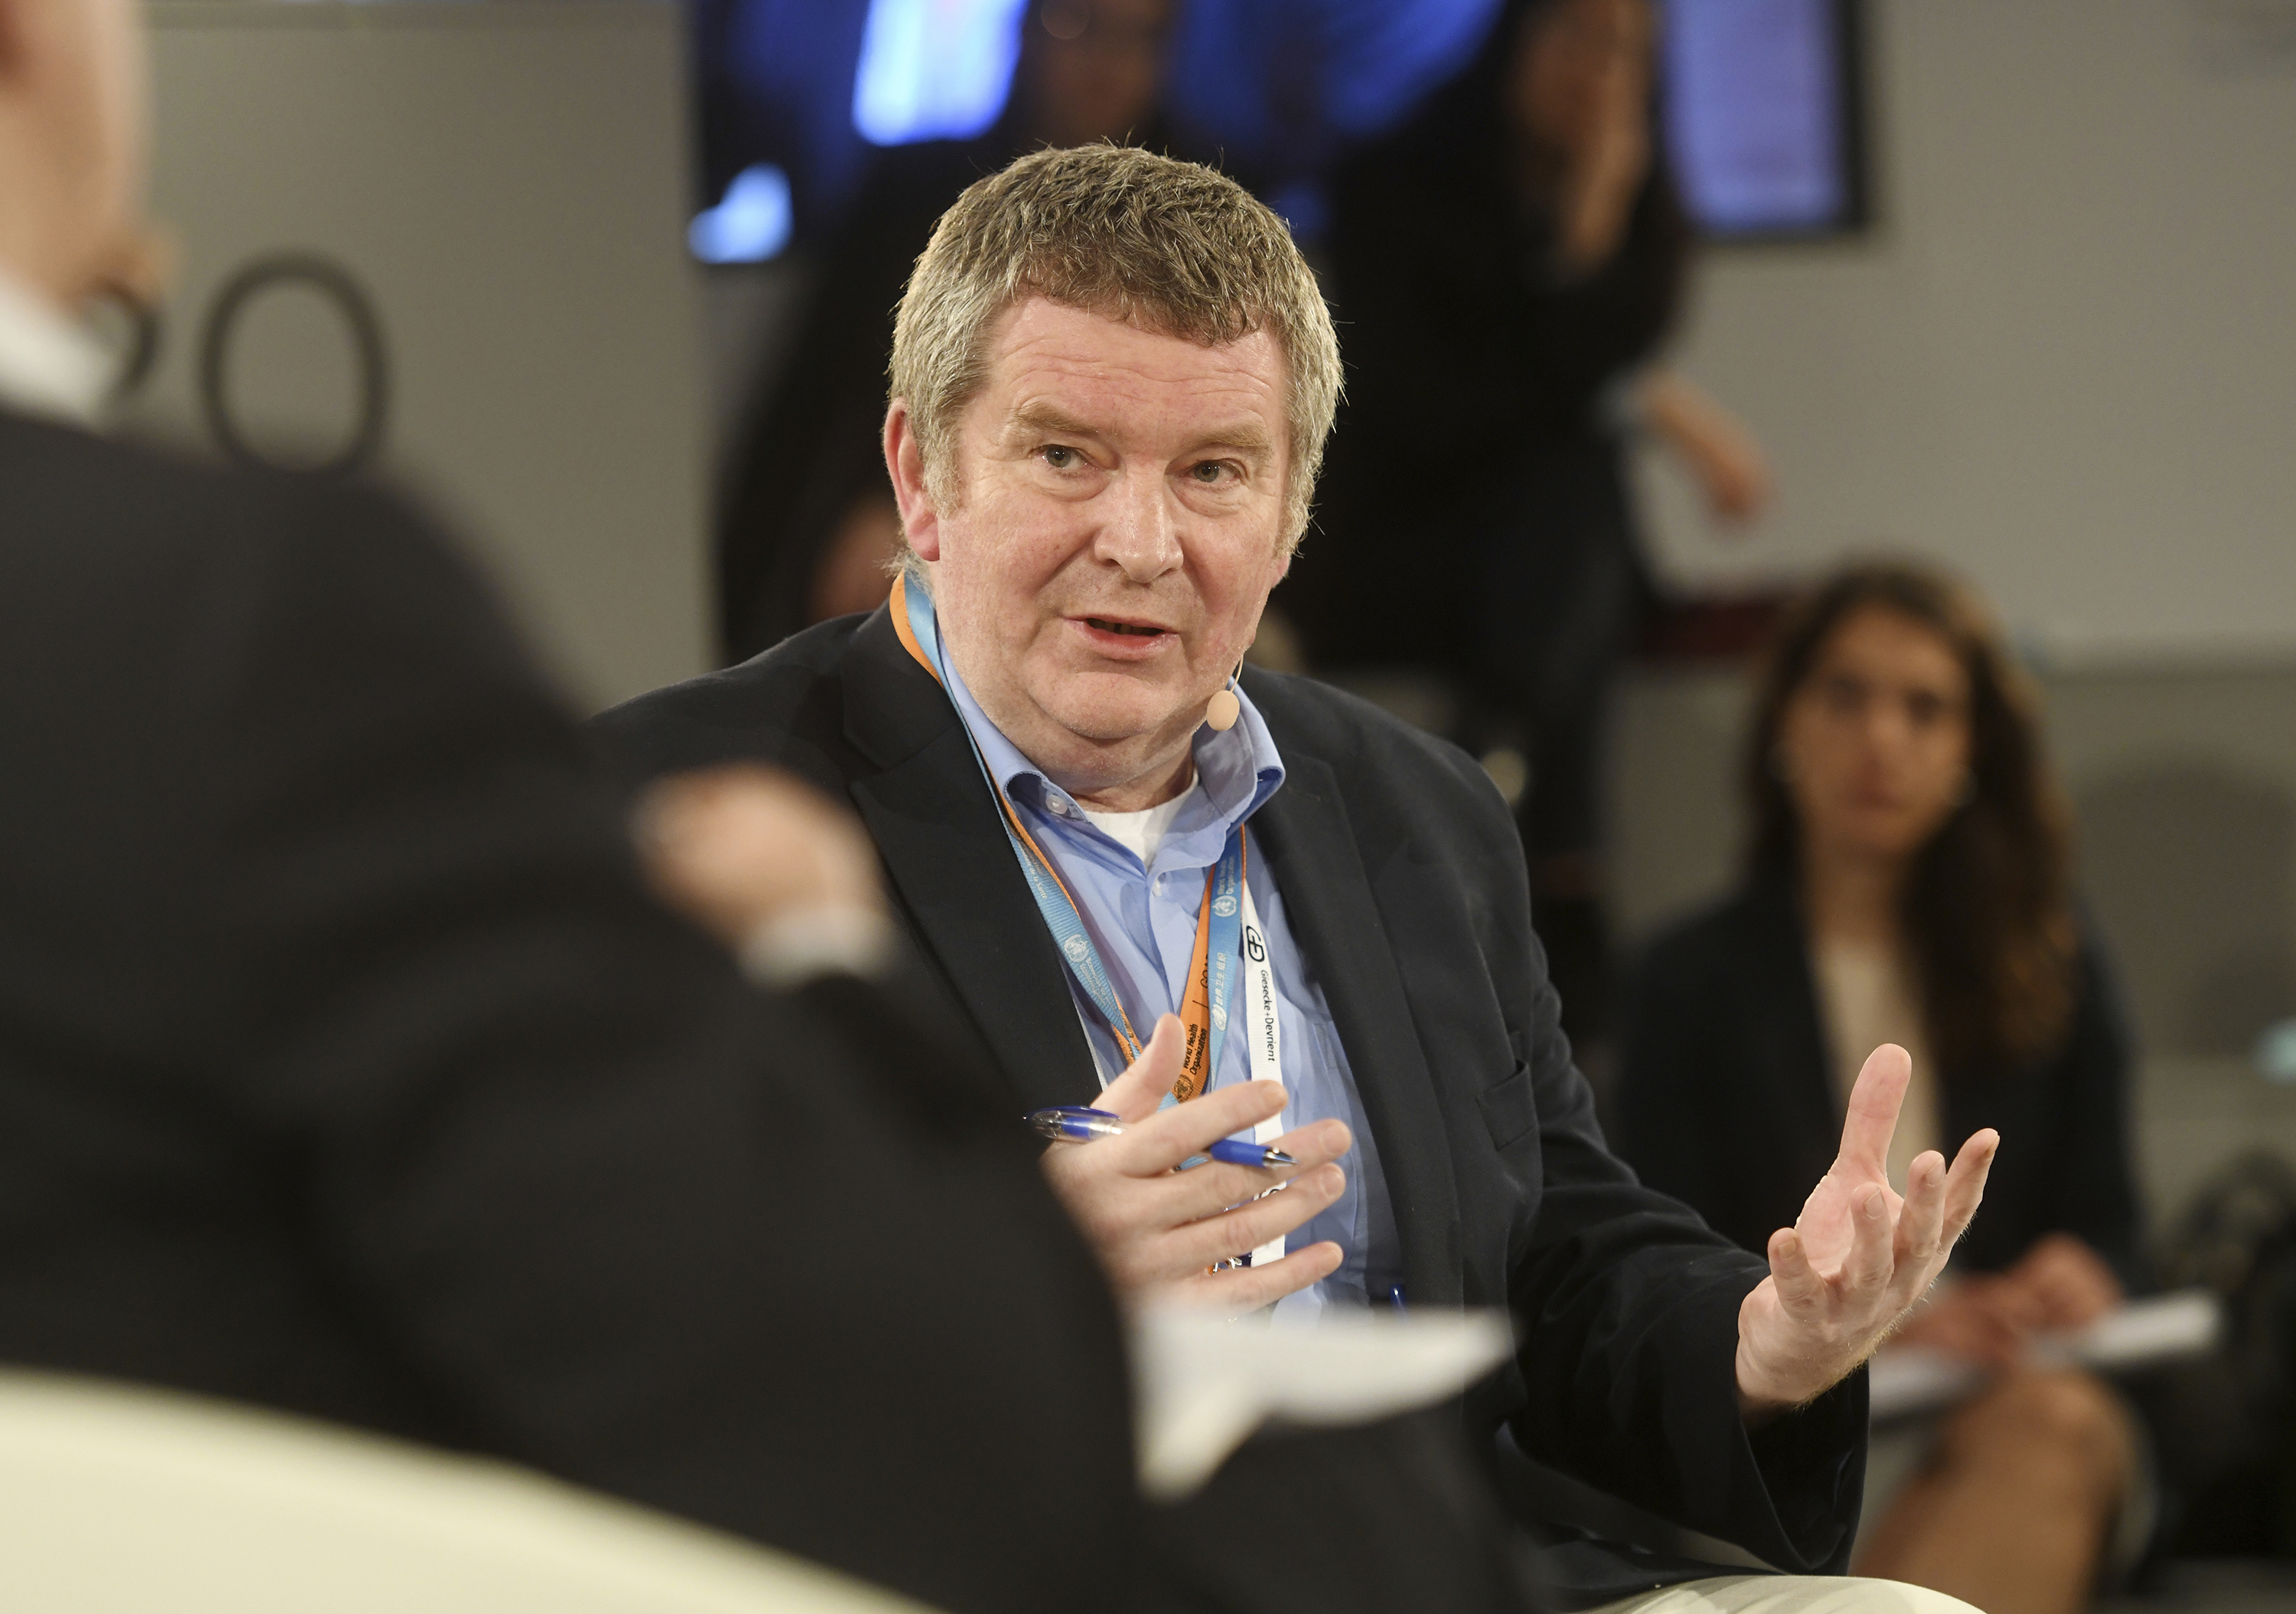 Mike Ryan, Executive Director of the World Health Organization WHO for Health Emergencies, speaks on the second day of the 56th Munich Security Conference, on Saturday, February 15.